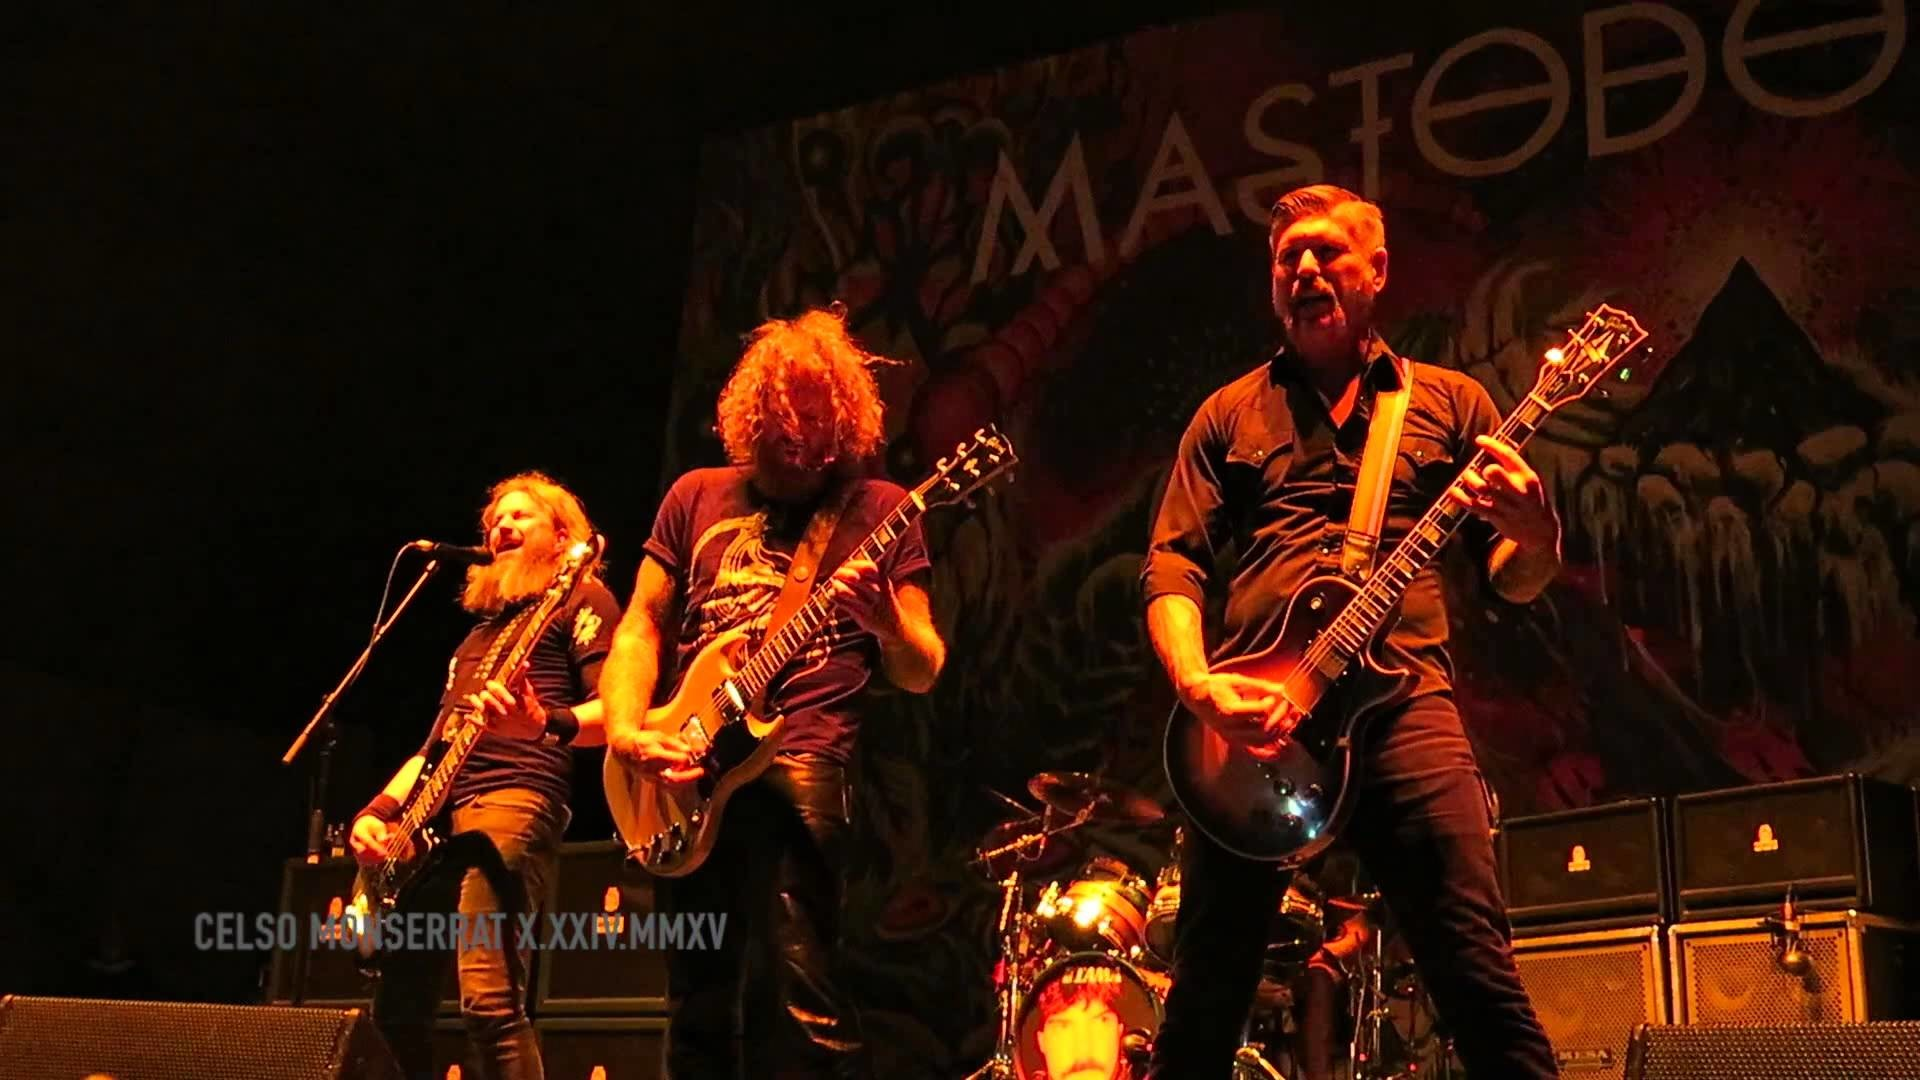 1920x1080 MASTODON - Black Tongue - KNOTFEST 2015, San Bernardino, California  10.24.2015